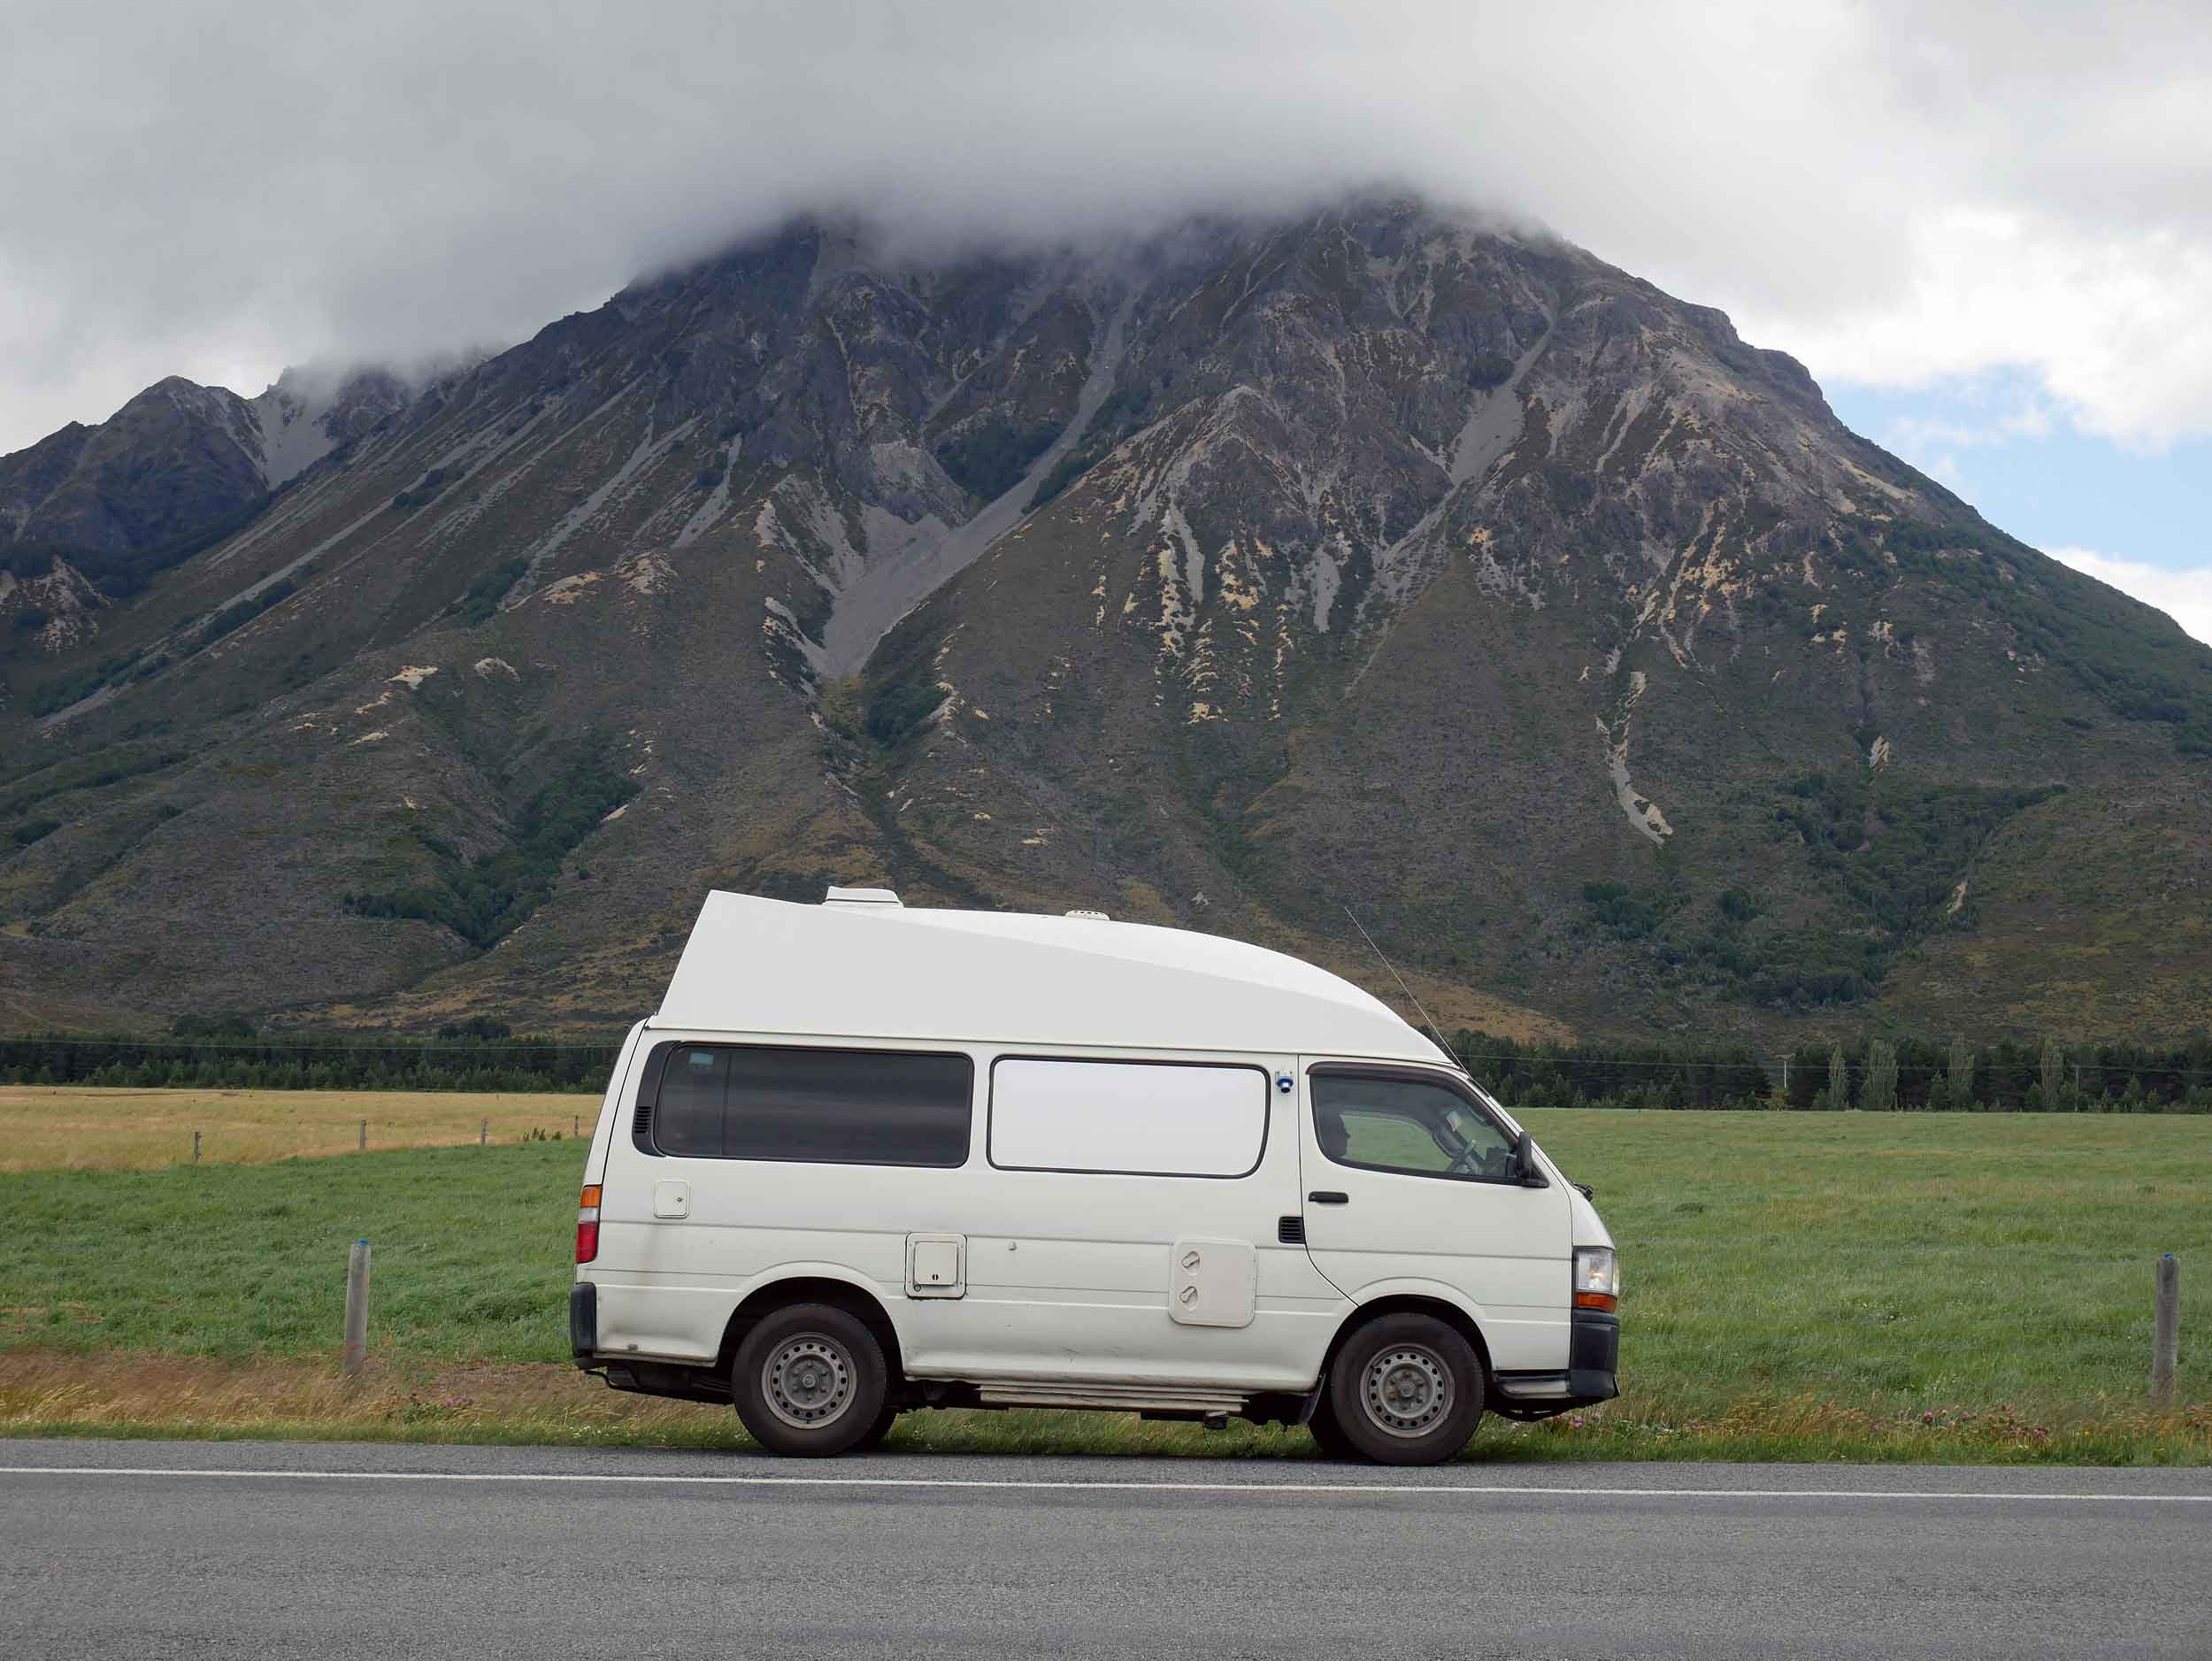 After landing in Christchurch on NZ's South Island, we jumped in our Lucky Ranger and headed straight for the West Coast via Arthur's Pass, the highest crossing of the Southern Alps (Jan 4).